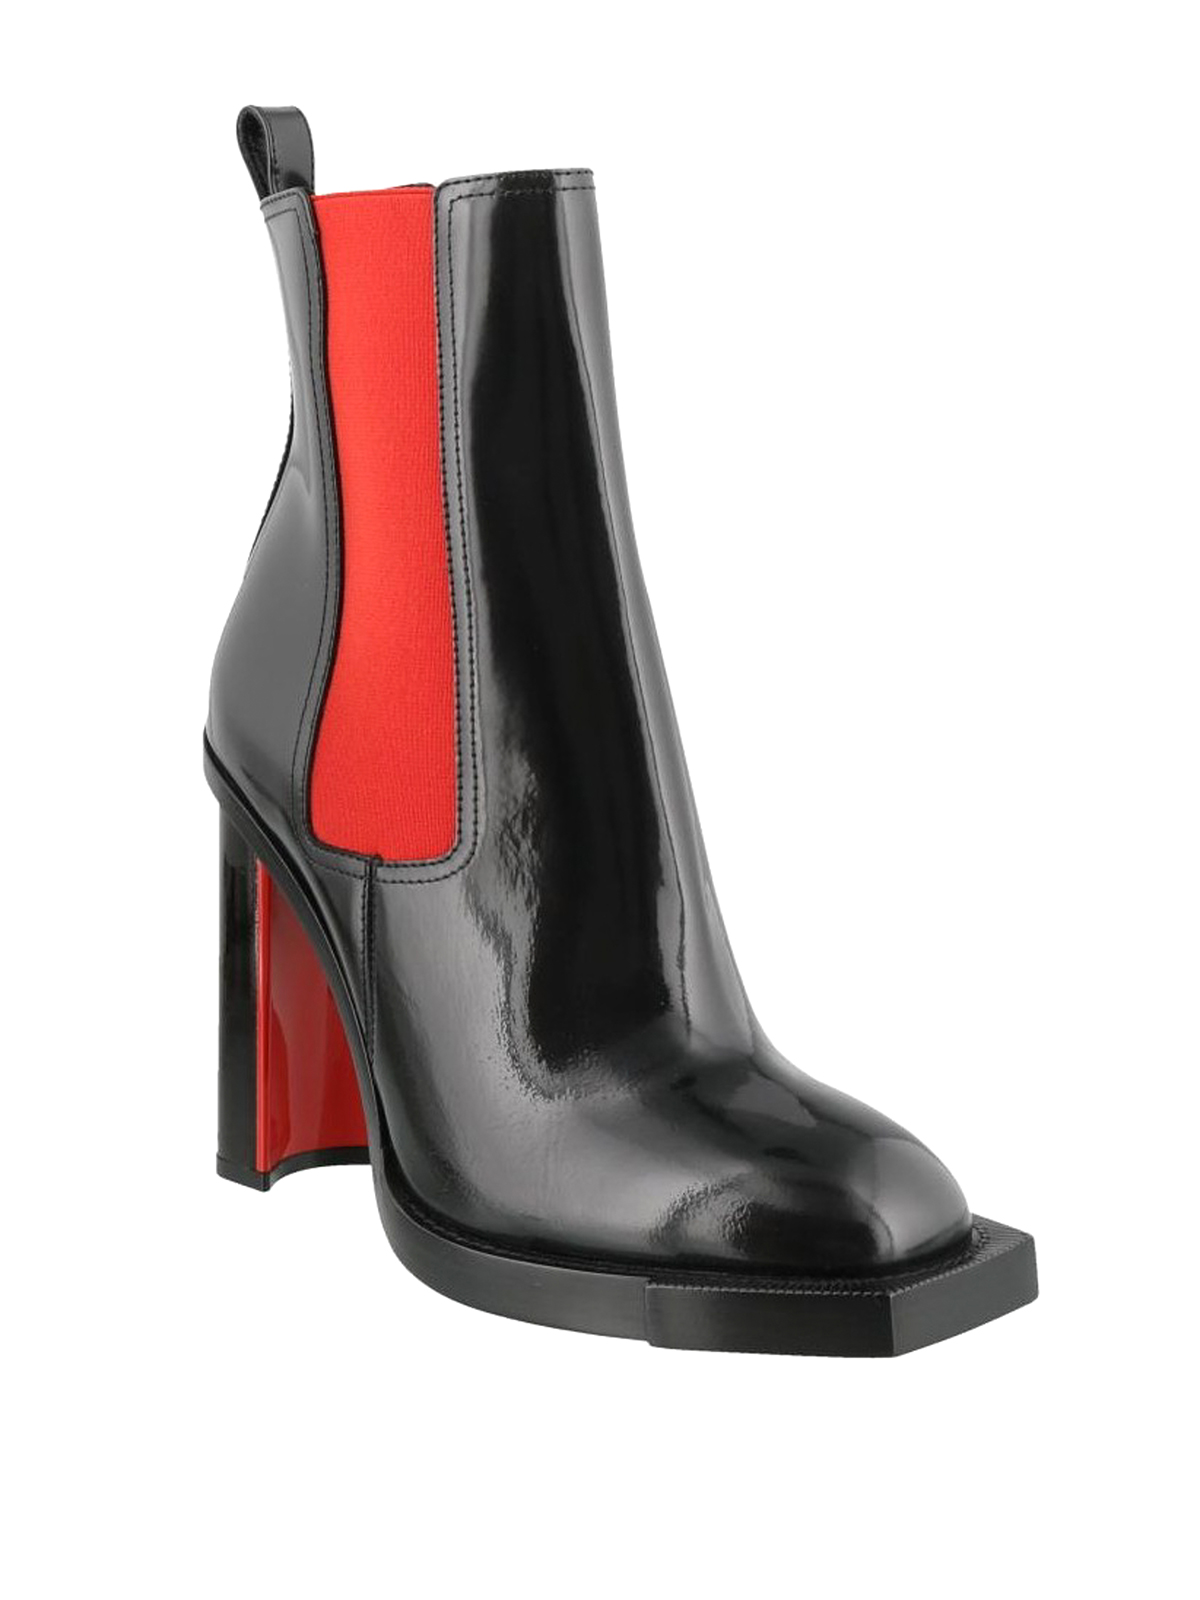 a23c43ae082e ALEXANDER MCQUEEN  ankle boots online - Brushed leather two-tone heeled  booties